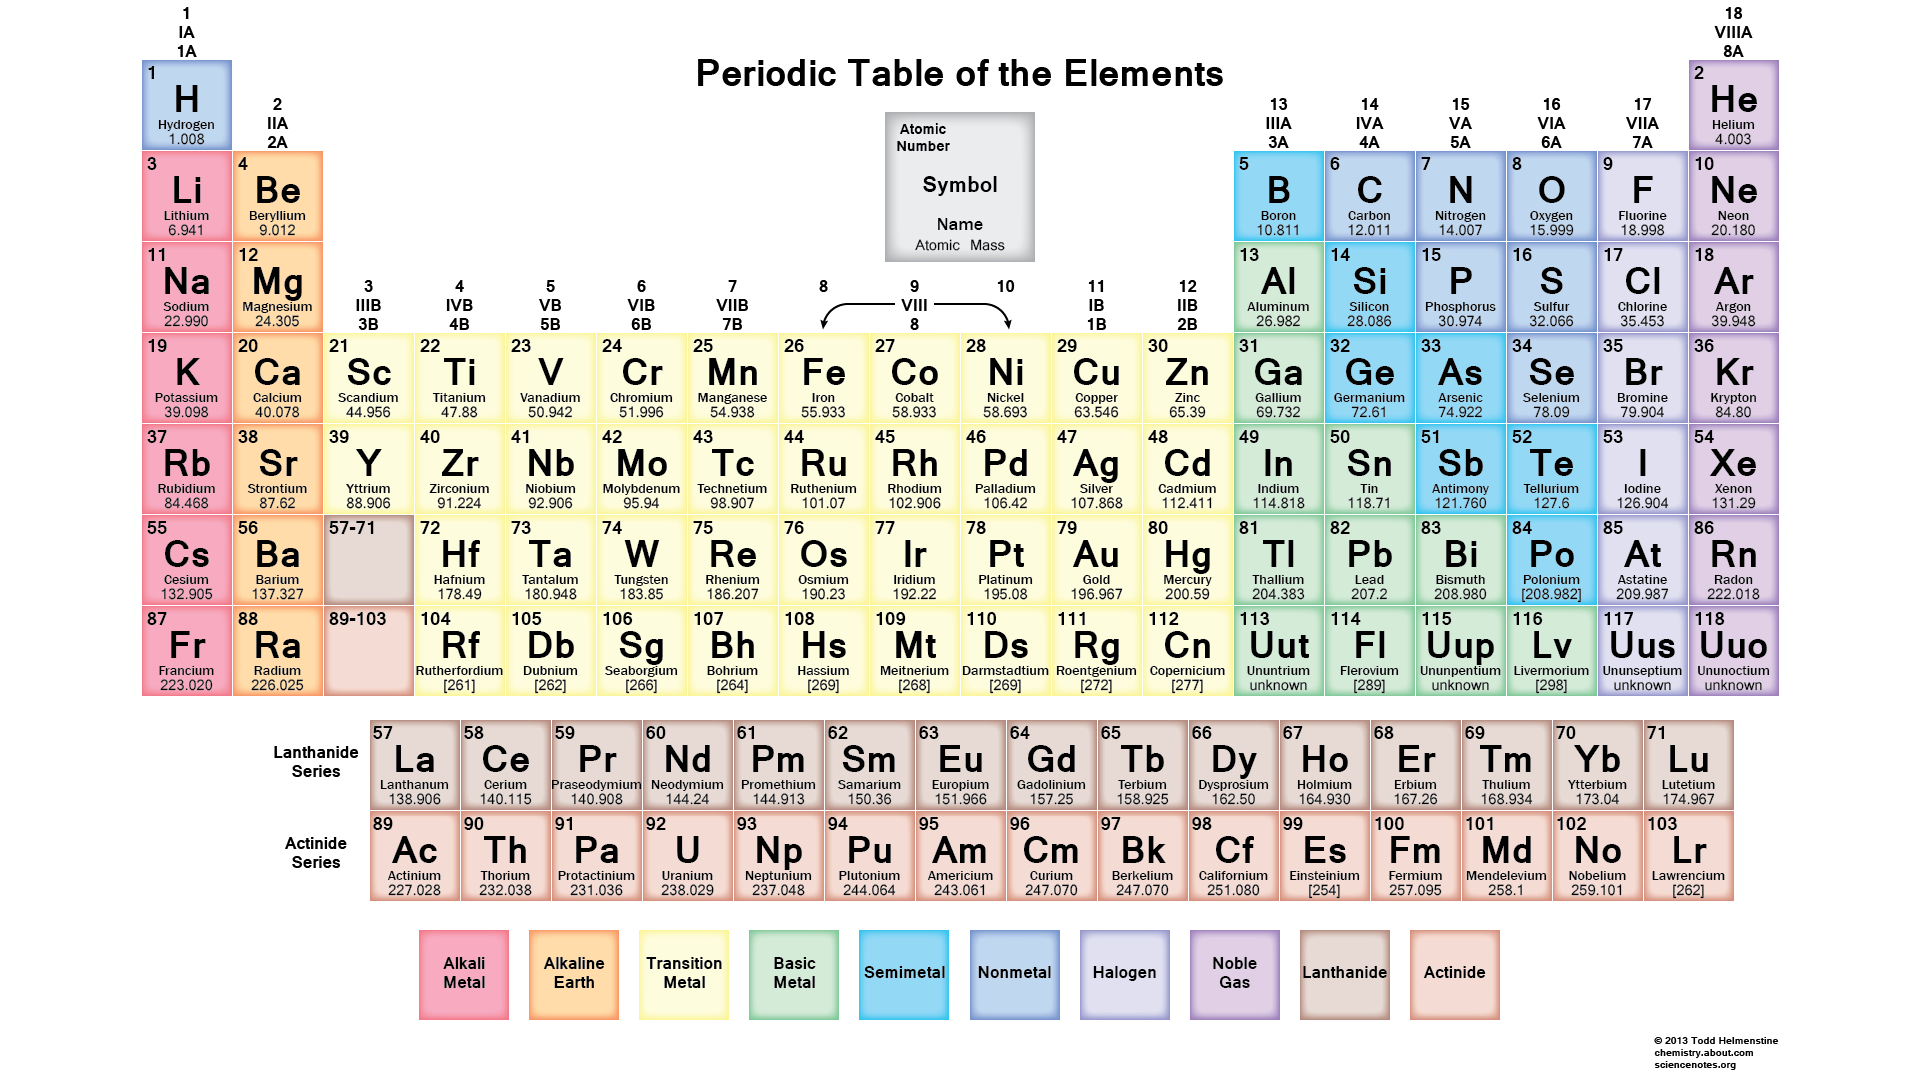 Printable periodic tables pdf periodic table printing and chemistry printable periodic table of the elements periodic tables to download or print urtaz